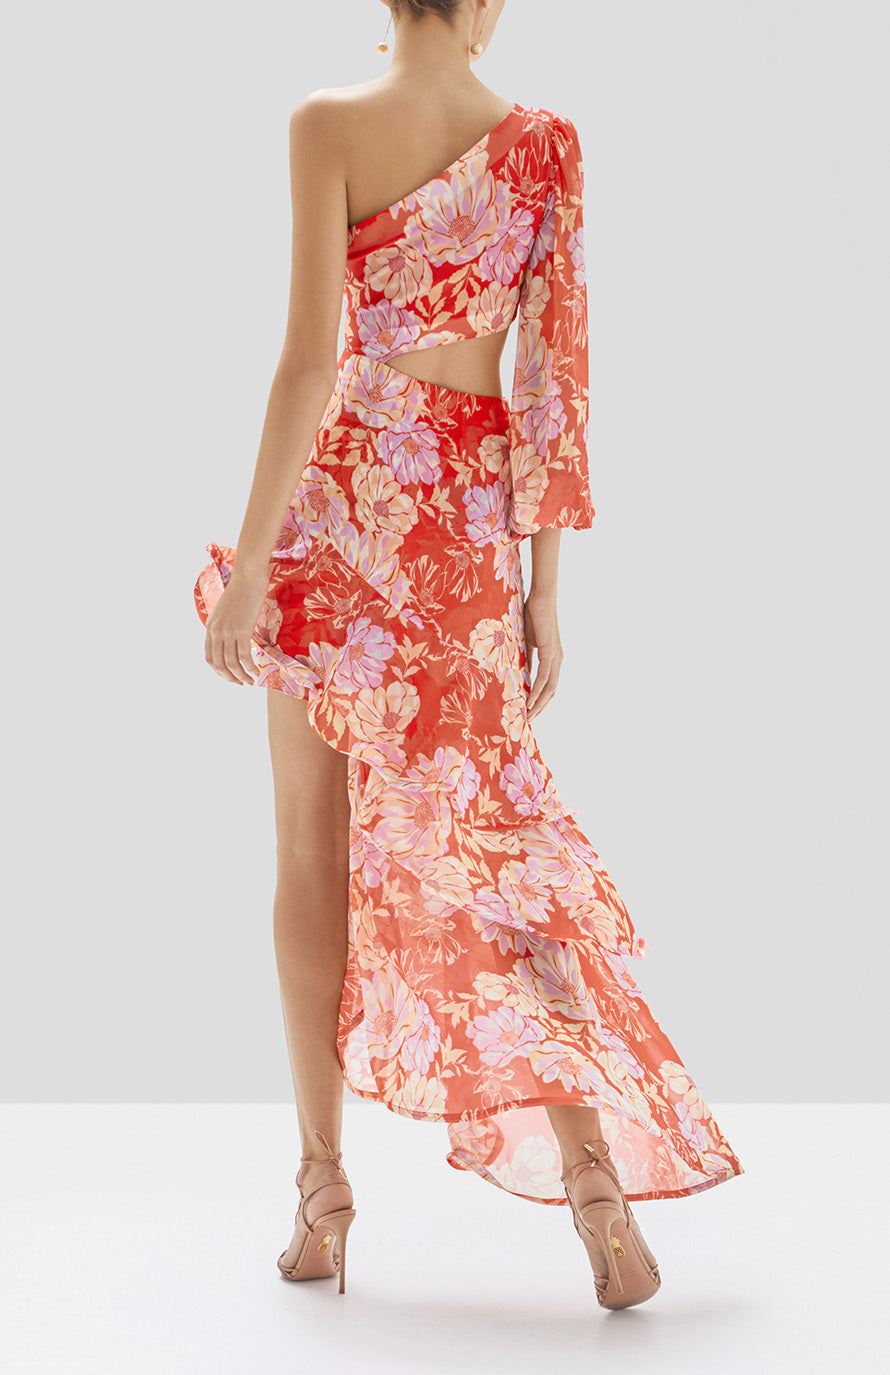 Alexis Sabetta Dress in Red Floral from Pre Spring 2020 Collection - Rear View